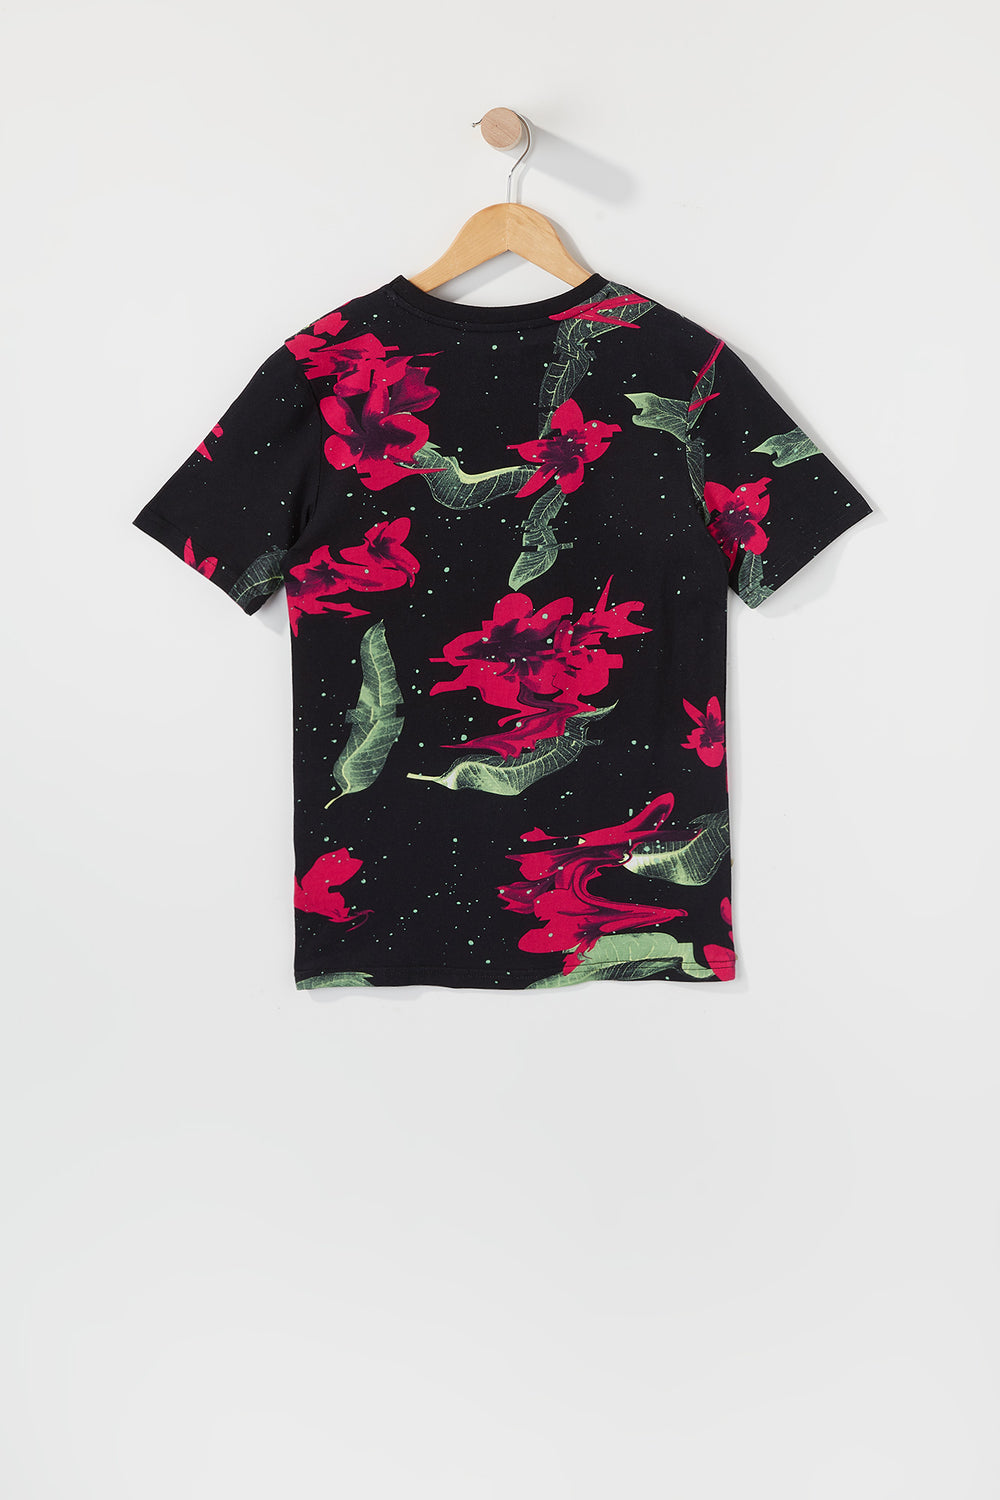 Young & Reckless Boys Electric Floral Graphic T-Shirt Black